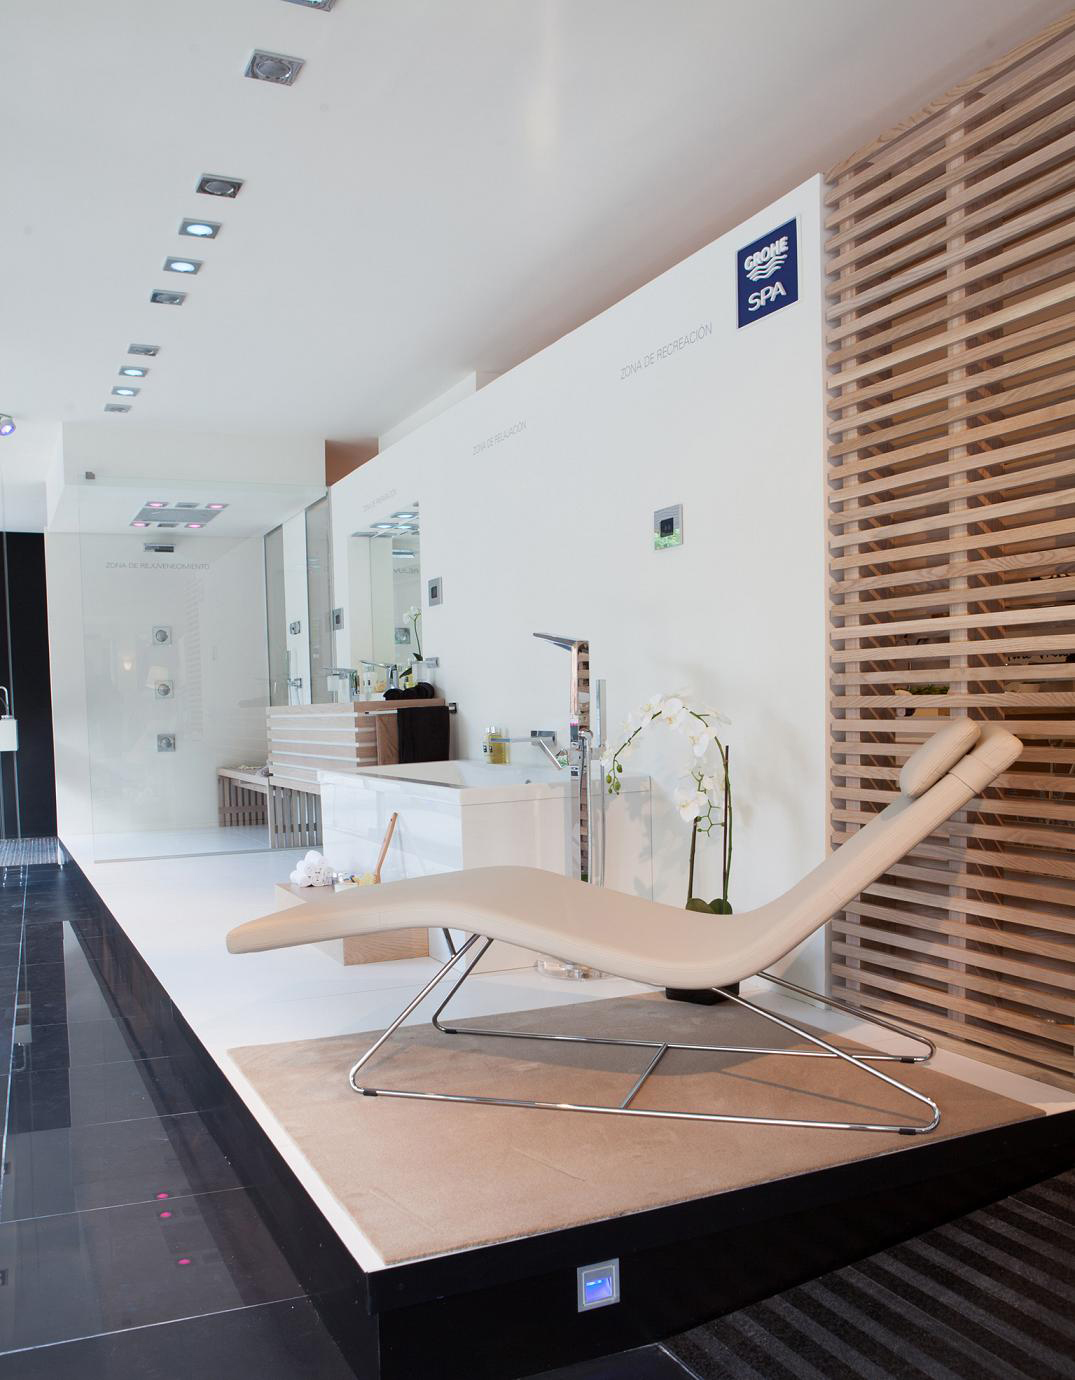 inauguracion-showroom-grohe-barcelona-bano-decoracion.jpg